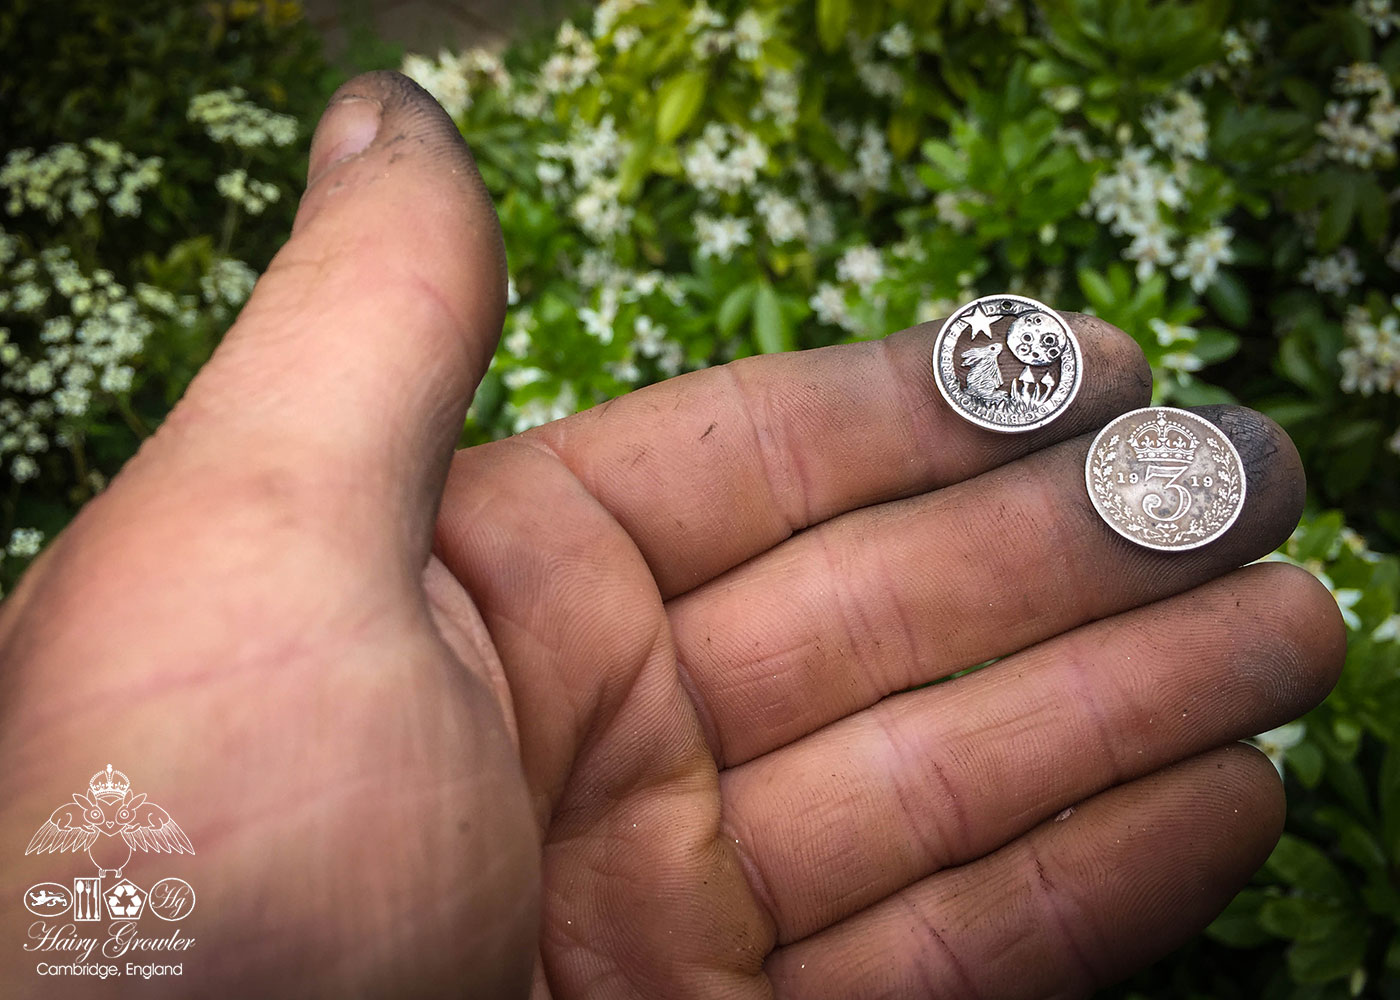 handmade, upcycled, contemporary and original silver coin moon gazing hare necklace pendant